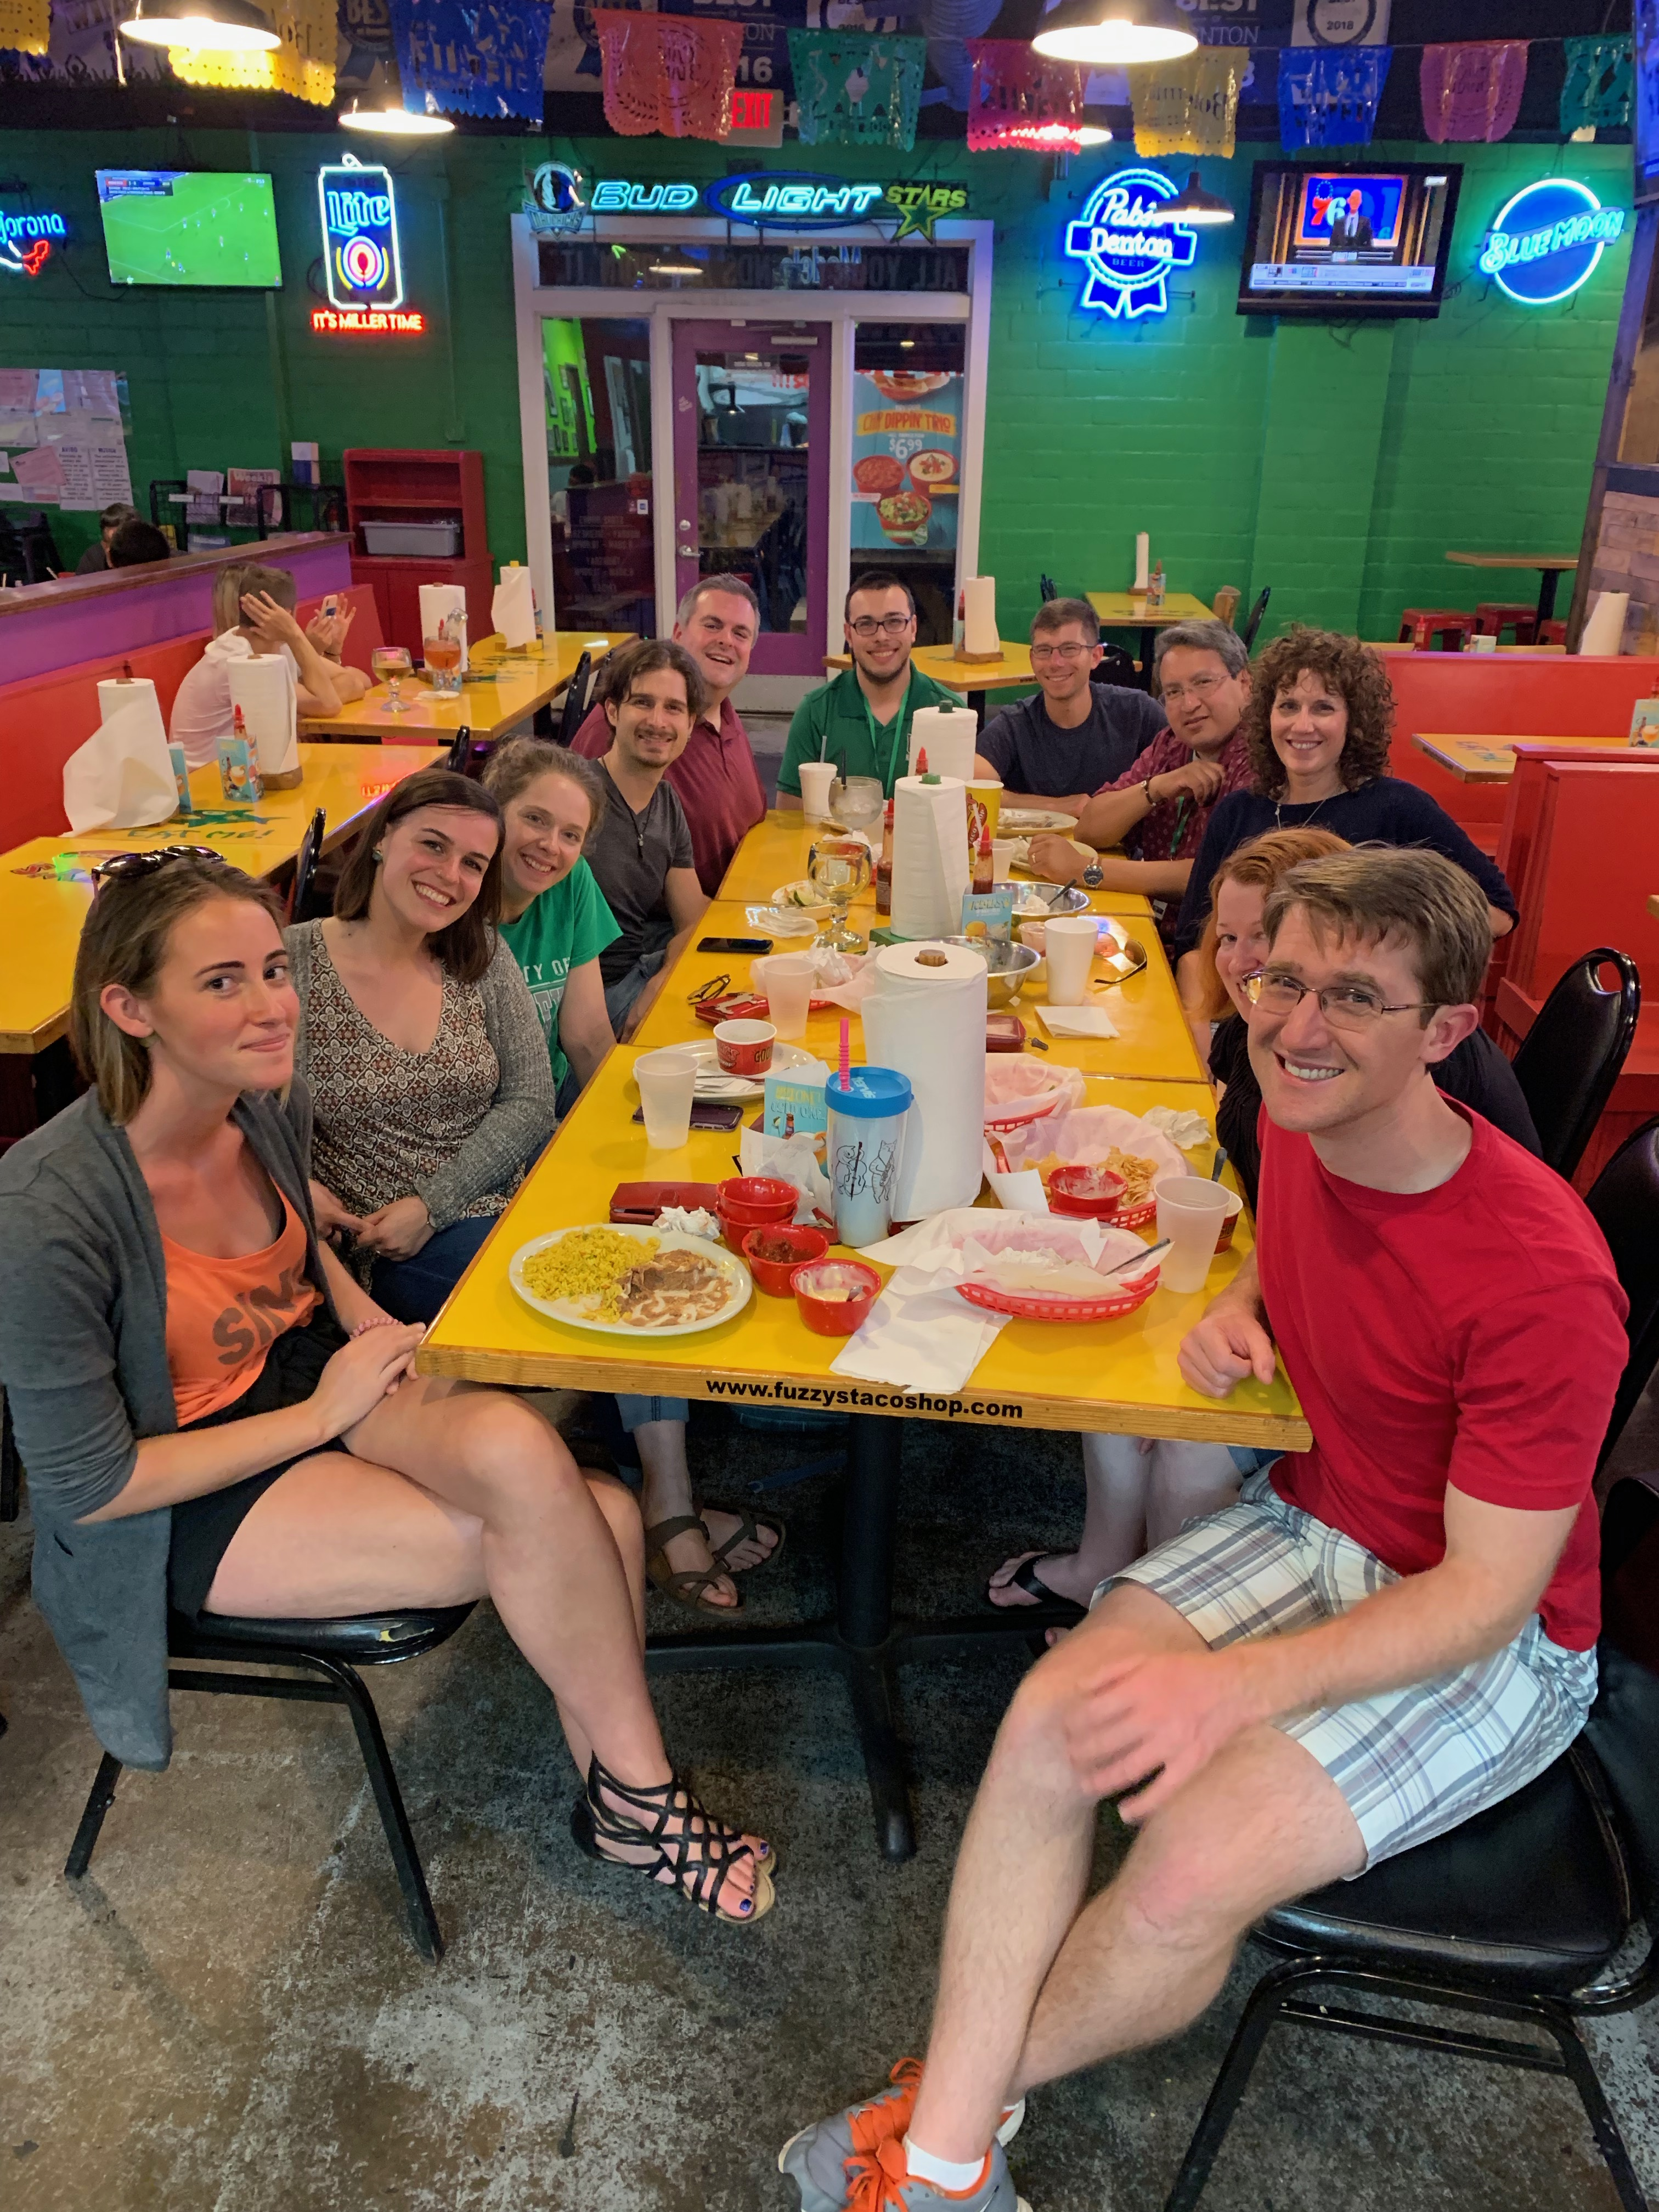 Educator Seminar participants at Fuzzy's Tacos